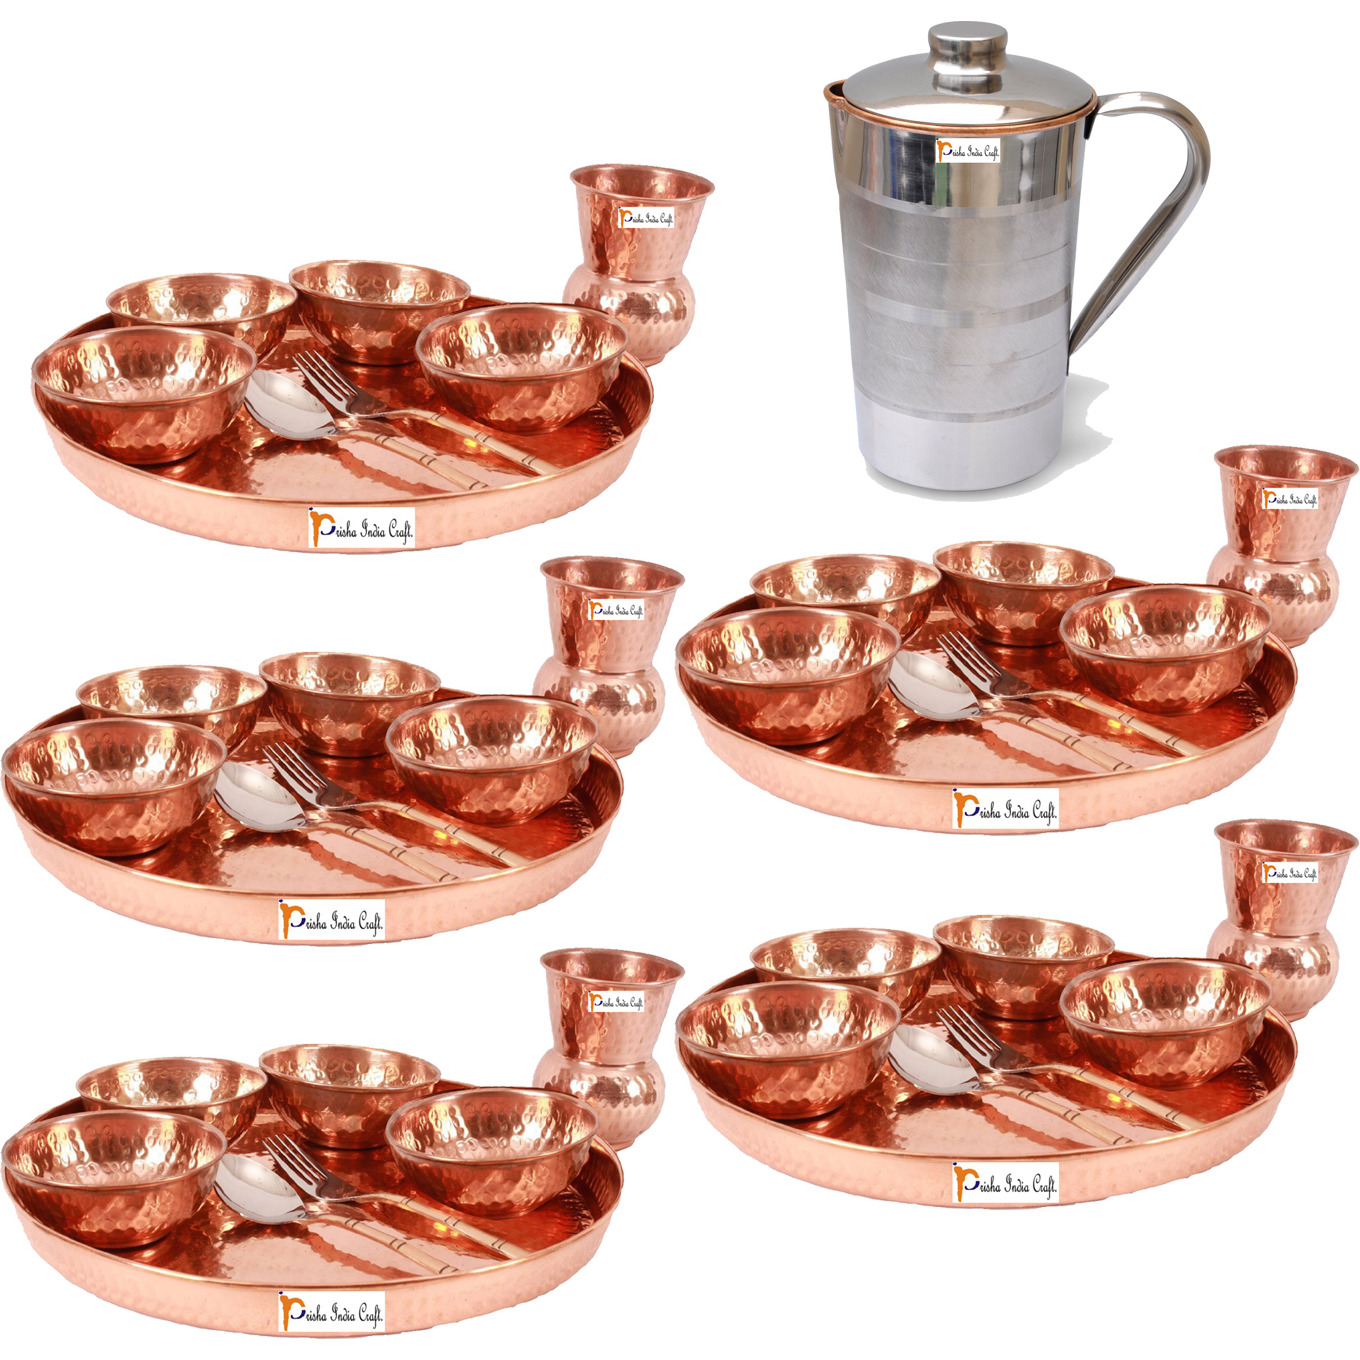 Prisha India Craft B. Set of 5 Dinnerware Traditional 100% Pure Copper Dinner Set of Thali Plate, Bowls, Glass and Spoon, Dia 12  With 1 Pure Copper Pitcher Jug - Christmas Gift